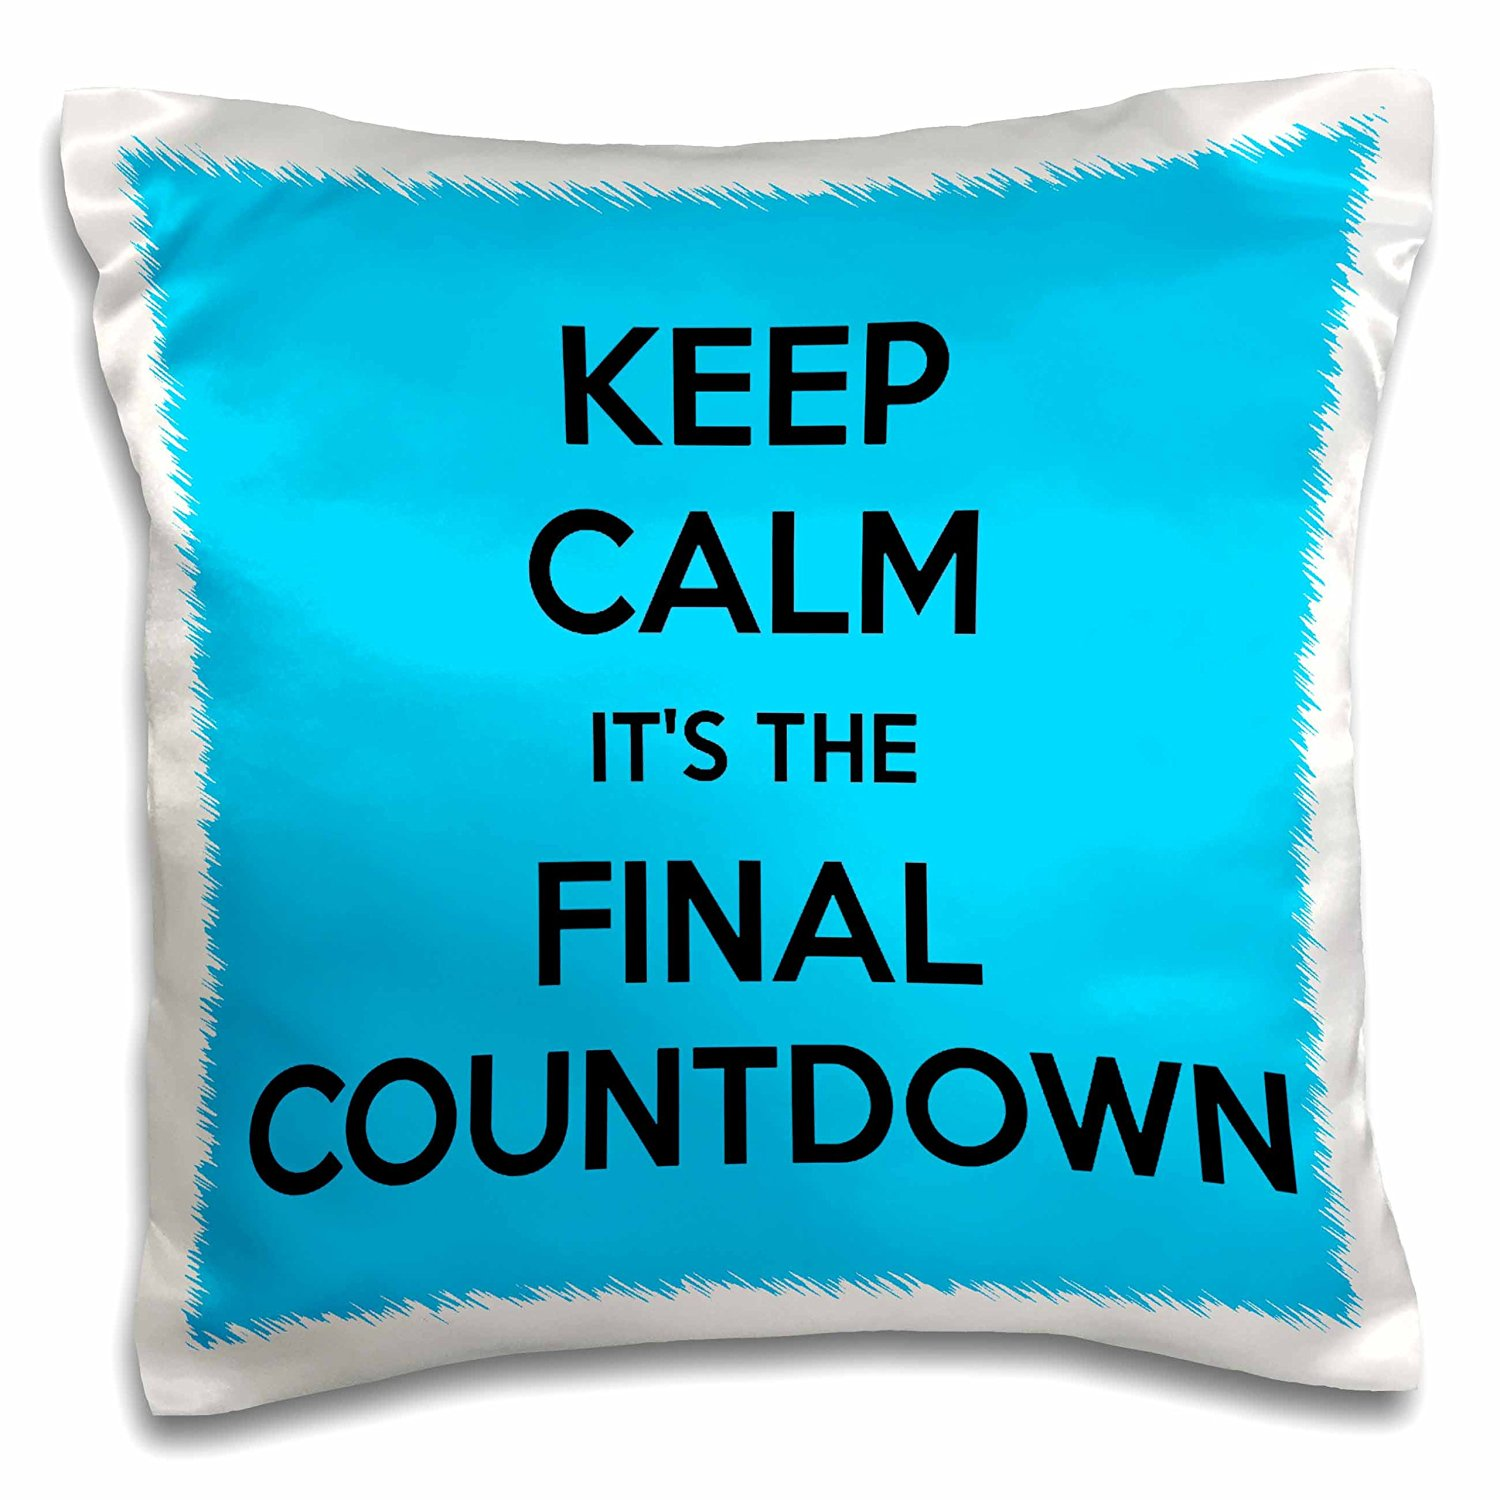 16bd95b11 EvaDane - Funny Quotes - Keep calm its the final countdown, Blue and Black -